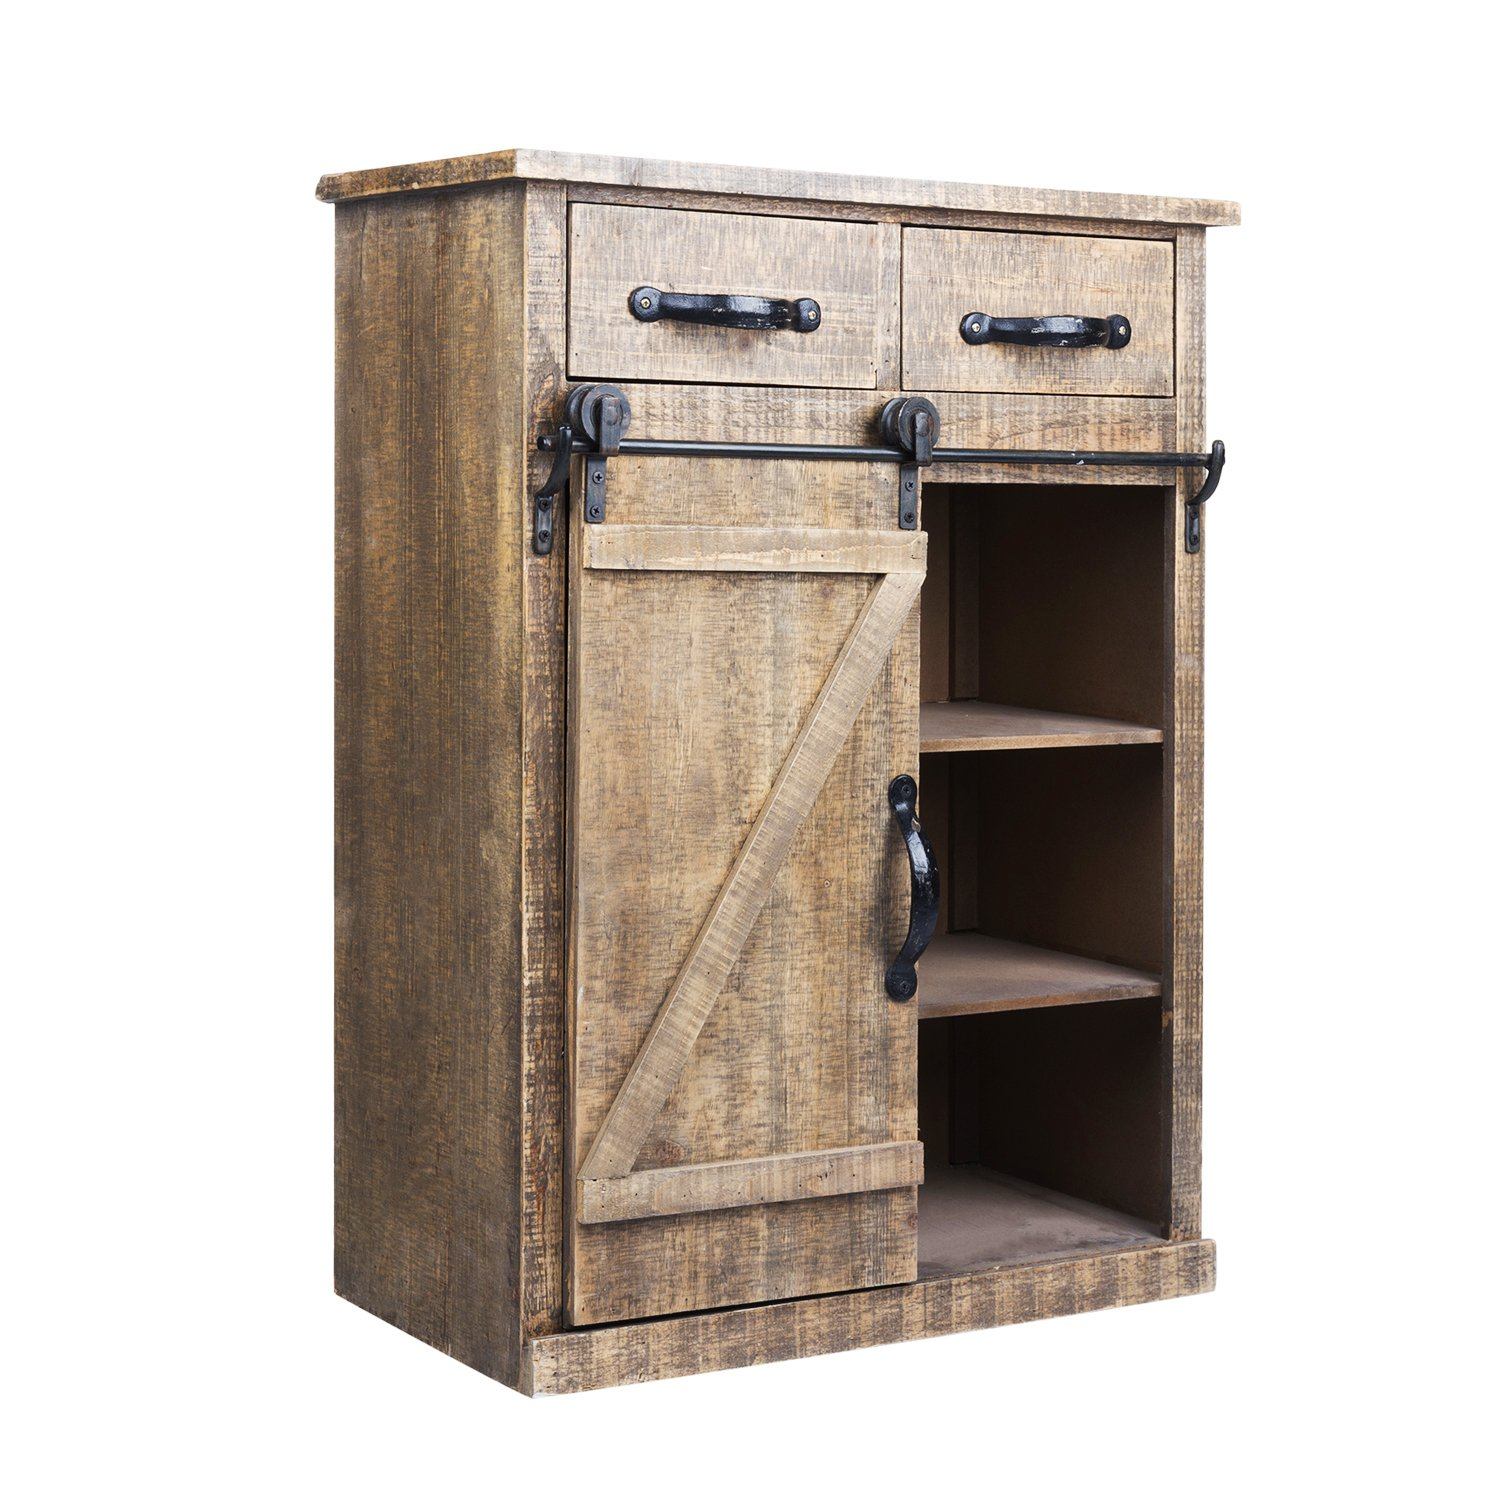 rustic barn door wood end table console oak corner accent cabinet farmhouse storage country vintage furniture kitchen dining gold target sofa company chairs tall silver lamps